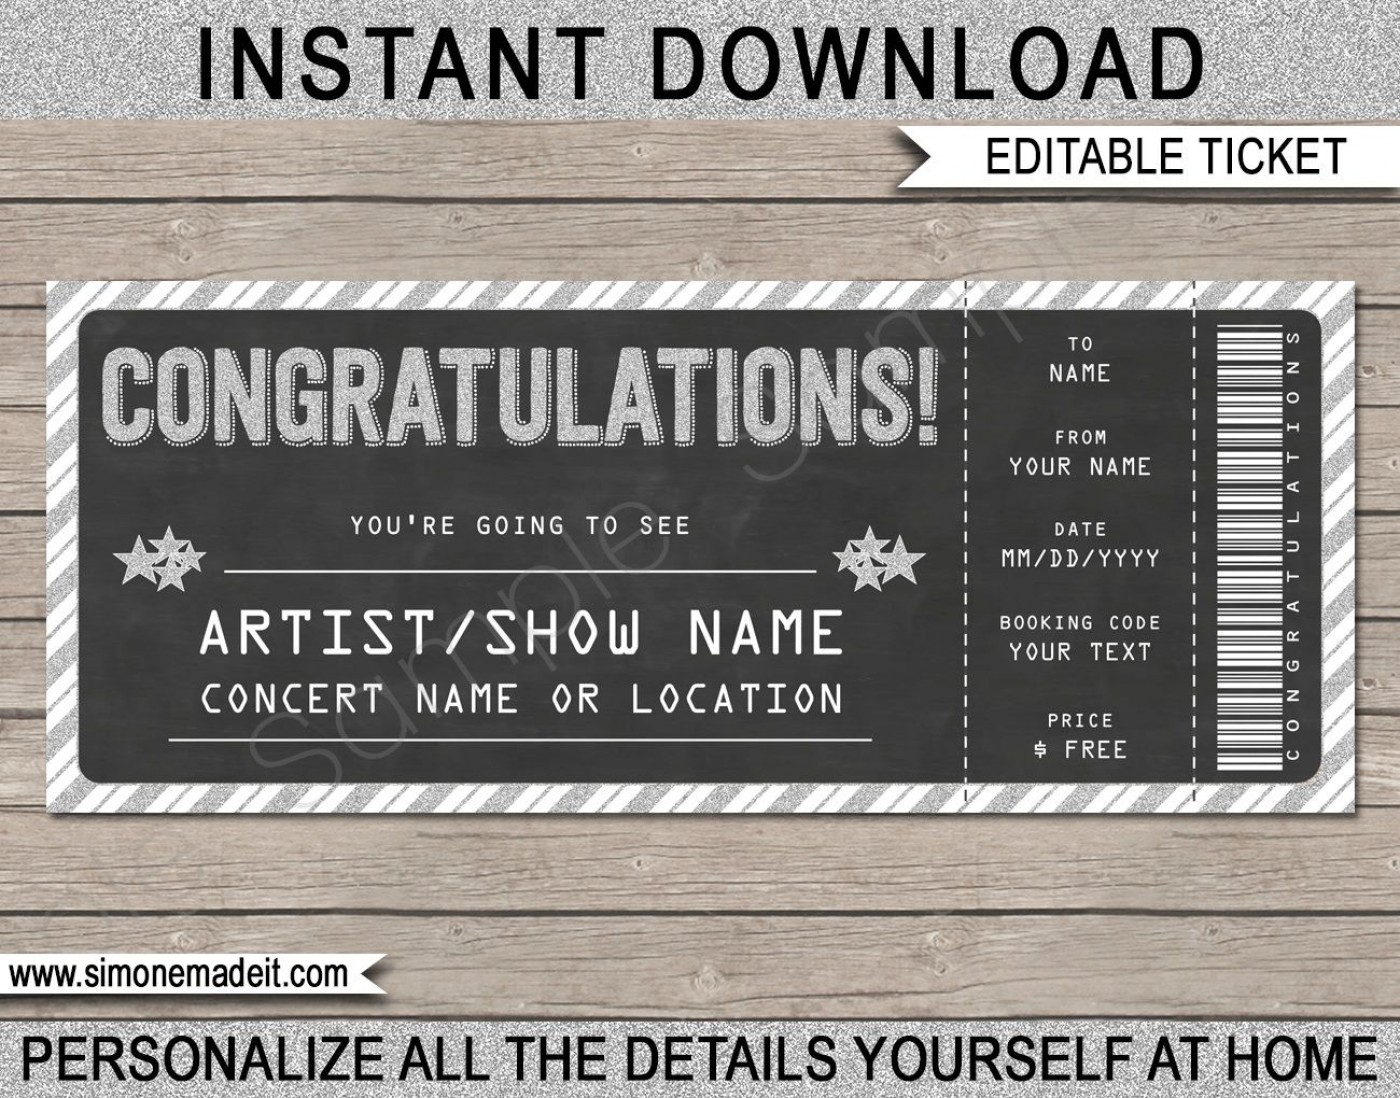 005 Incredible Editable Ticket Template Free High Resolution  Concert Word Irctc Format Download Movie1400